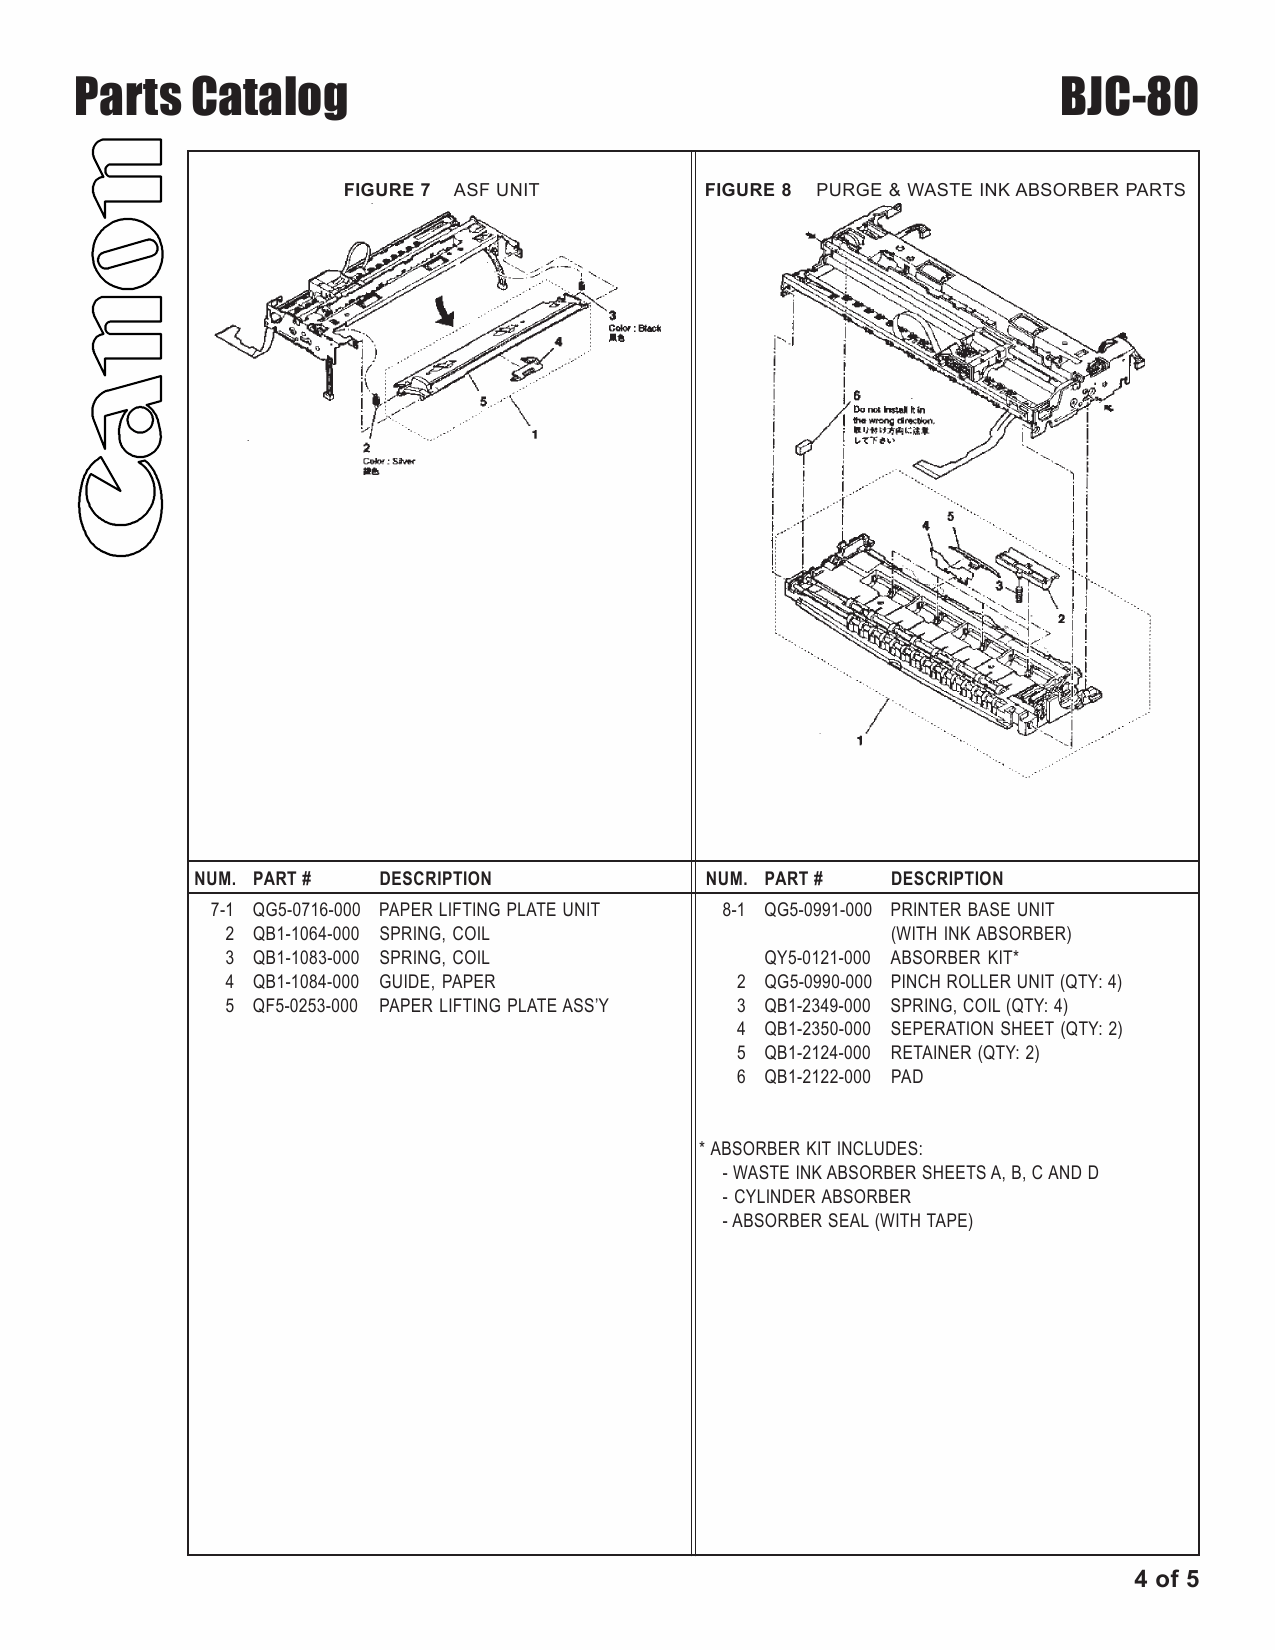 Canon BubbleJet BJC-80 Parts Catalog Manual-5